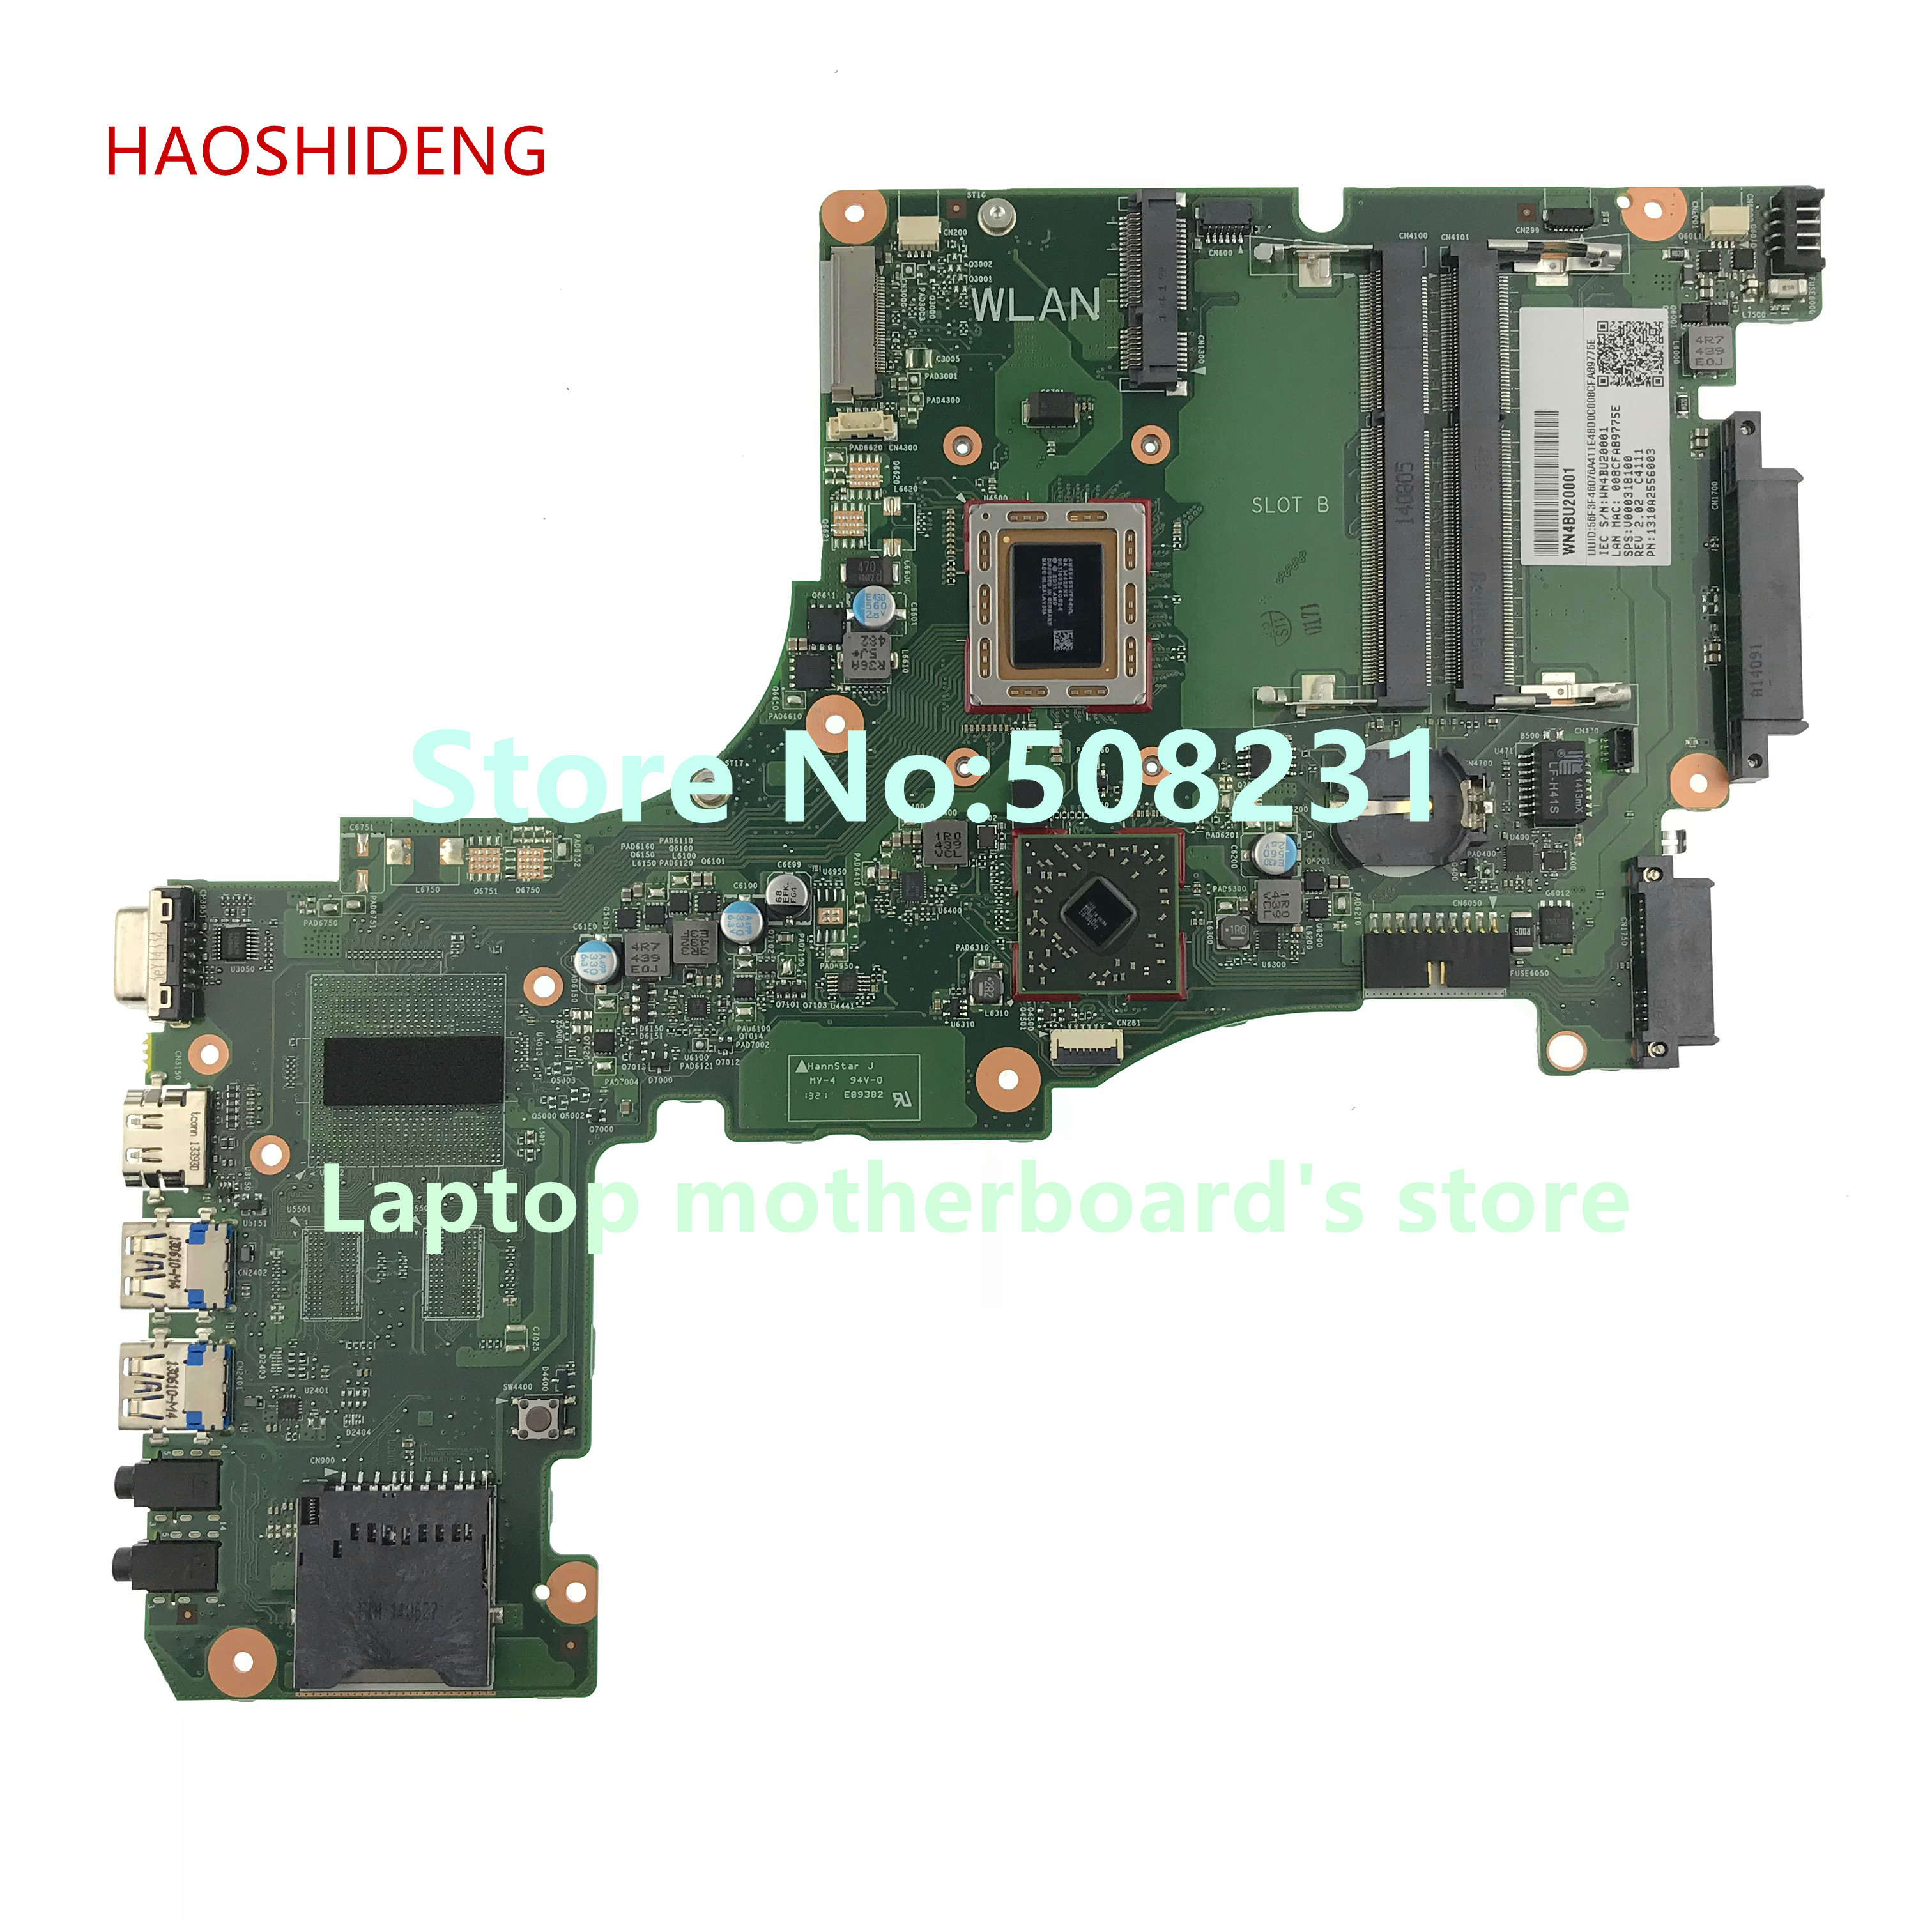 HAOSHIDENG V000318100 Mainboard for Toshiba Satellite L50DT L50DT-A Laptop Motherboard CR10ADTG-6050A2556001-MB-A02 6050a2488301 mb a02 sps v000268060 laptop motherboard for toshiba satellite nb510 ddr3 sr0w1 n2600 cpu onboard mainboard